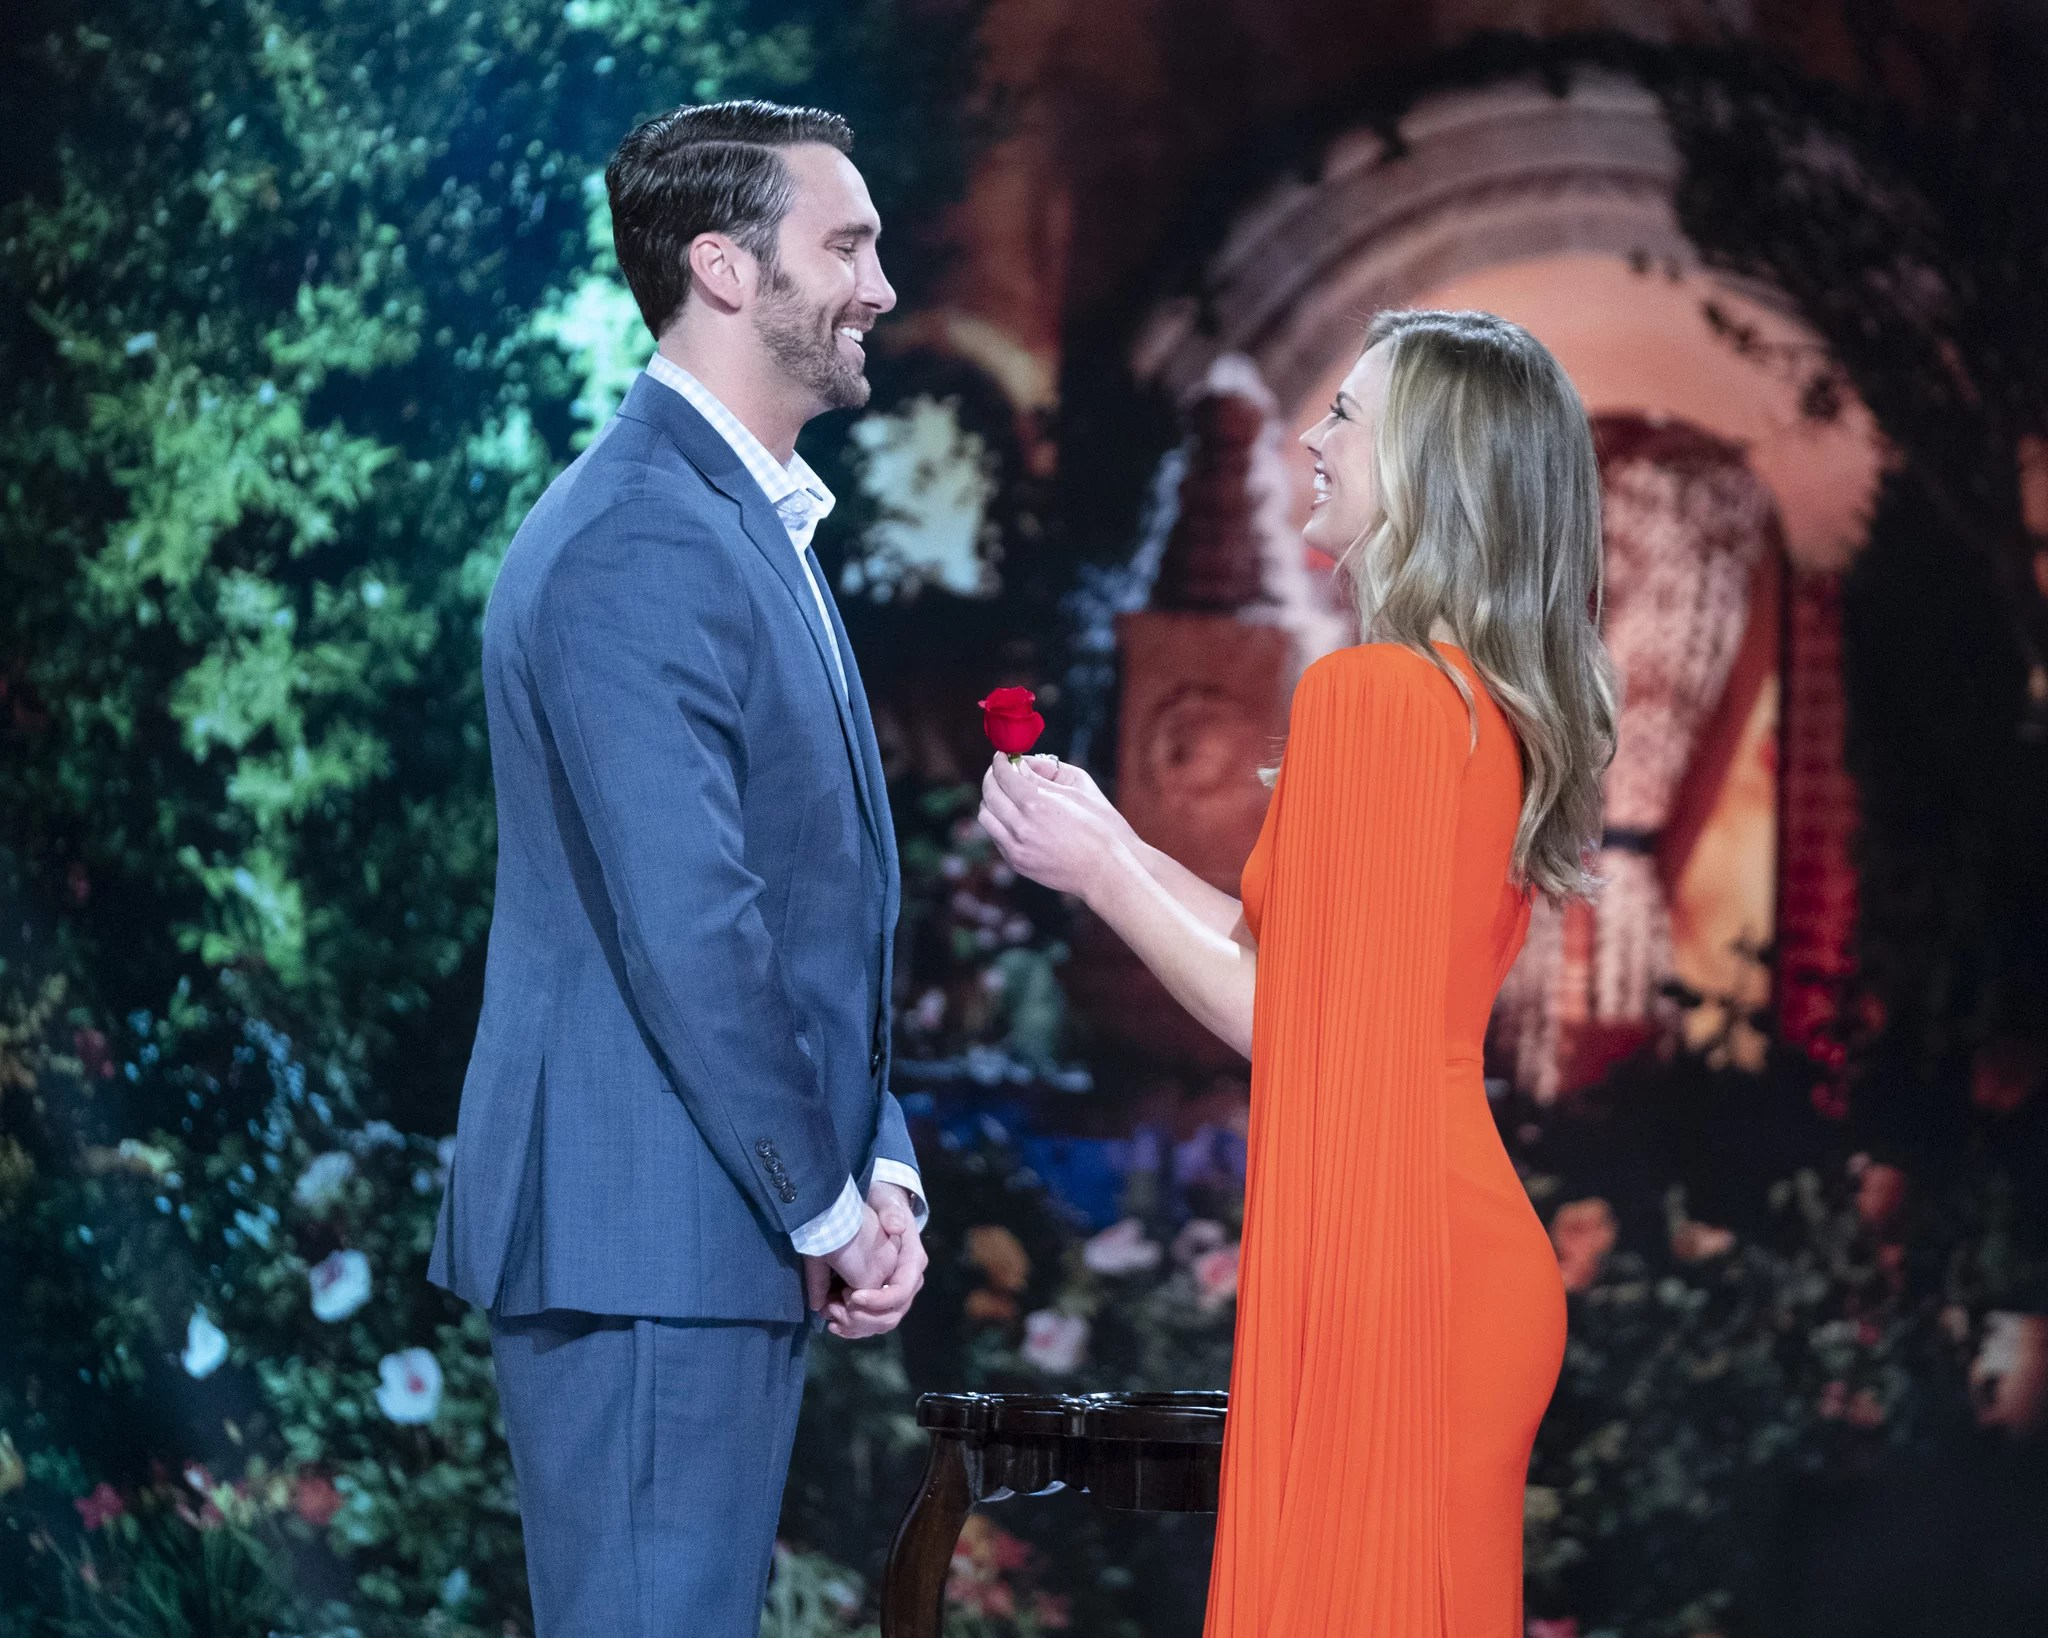 Tuesday Nights Finale Of The Bachelor Included Some Sneak Peeks Of The Bachelorettes Upcoming Season And It Looks Like Fans Are In For A Wild Ride